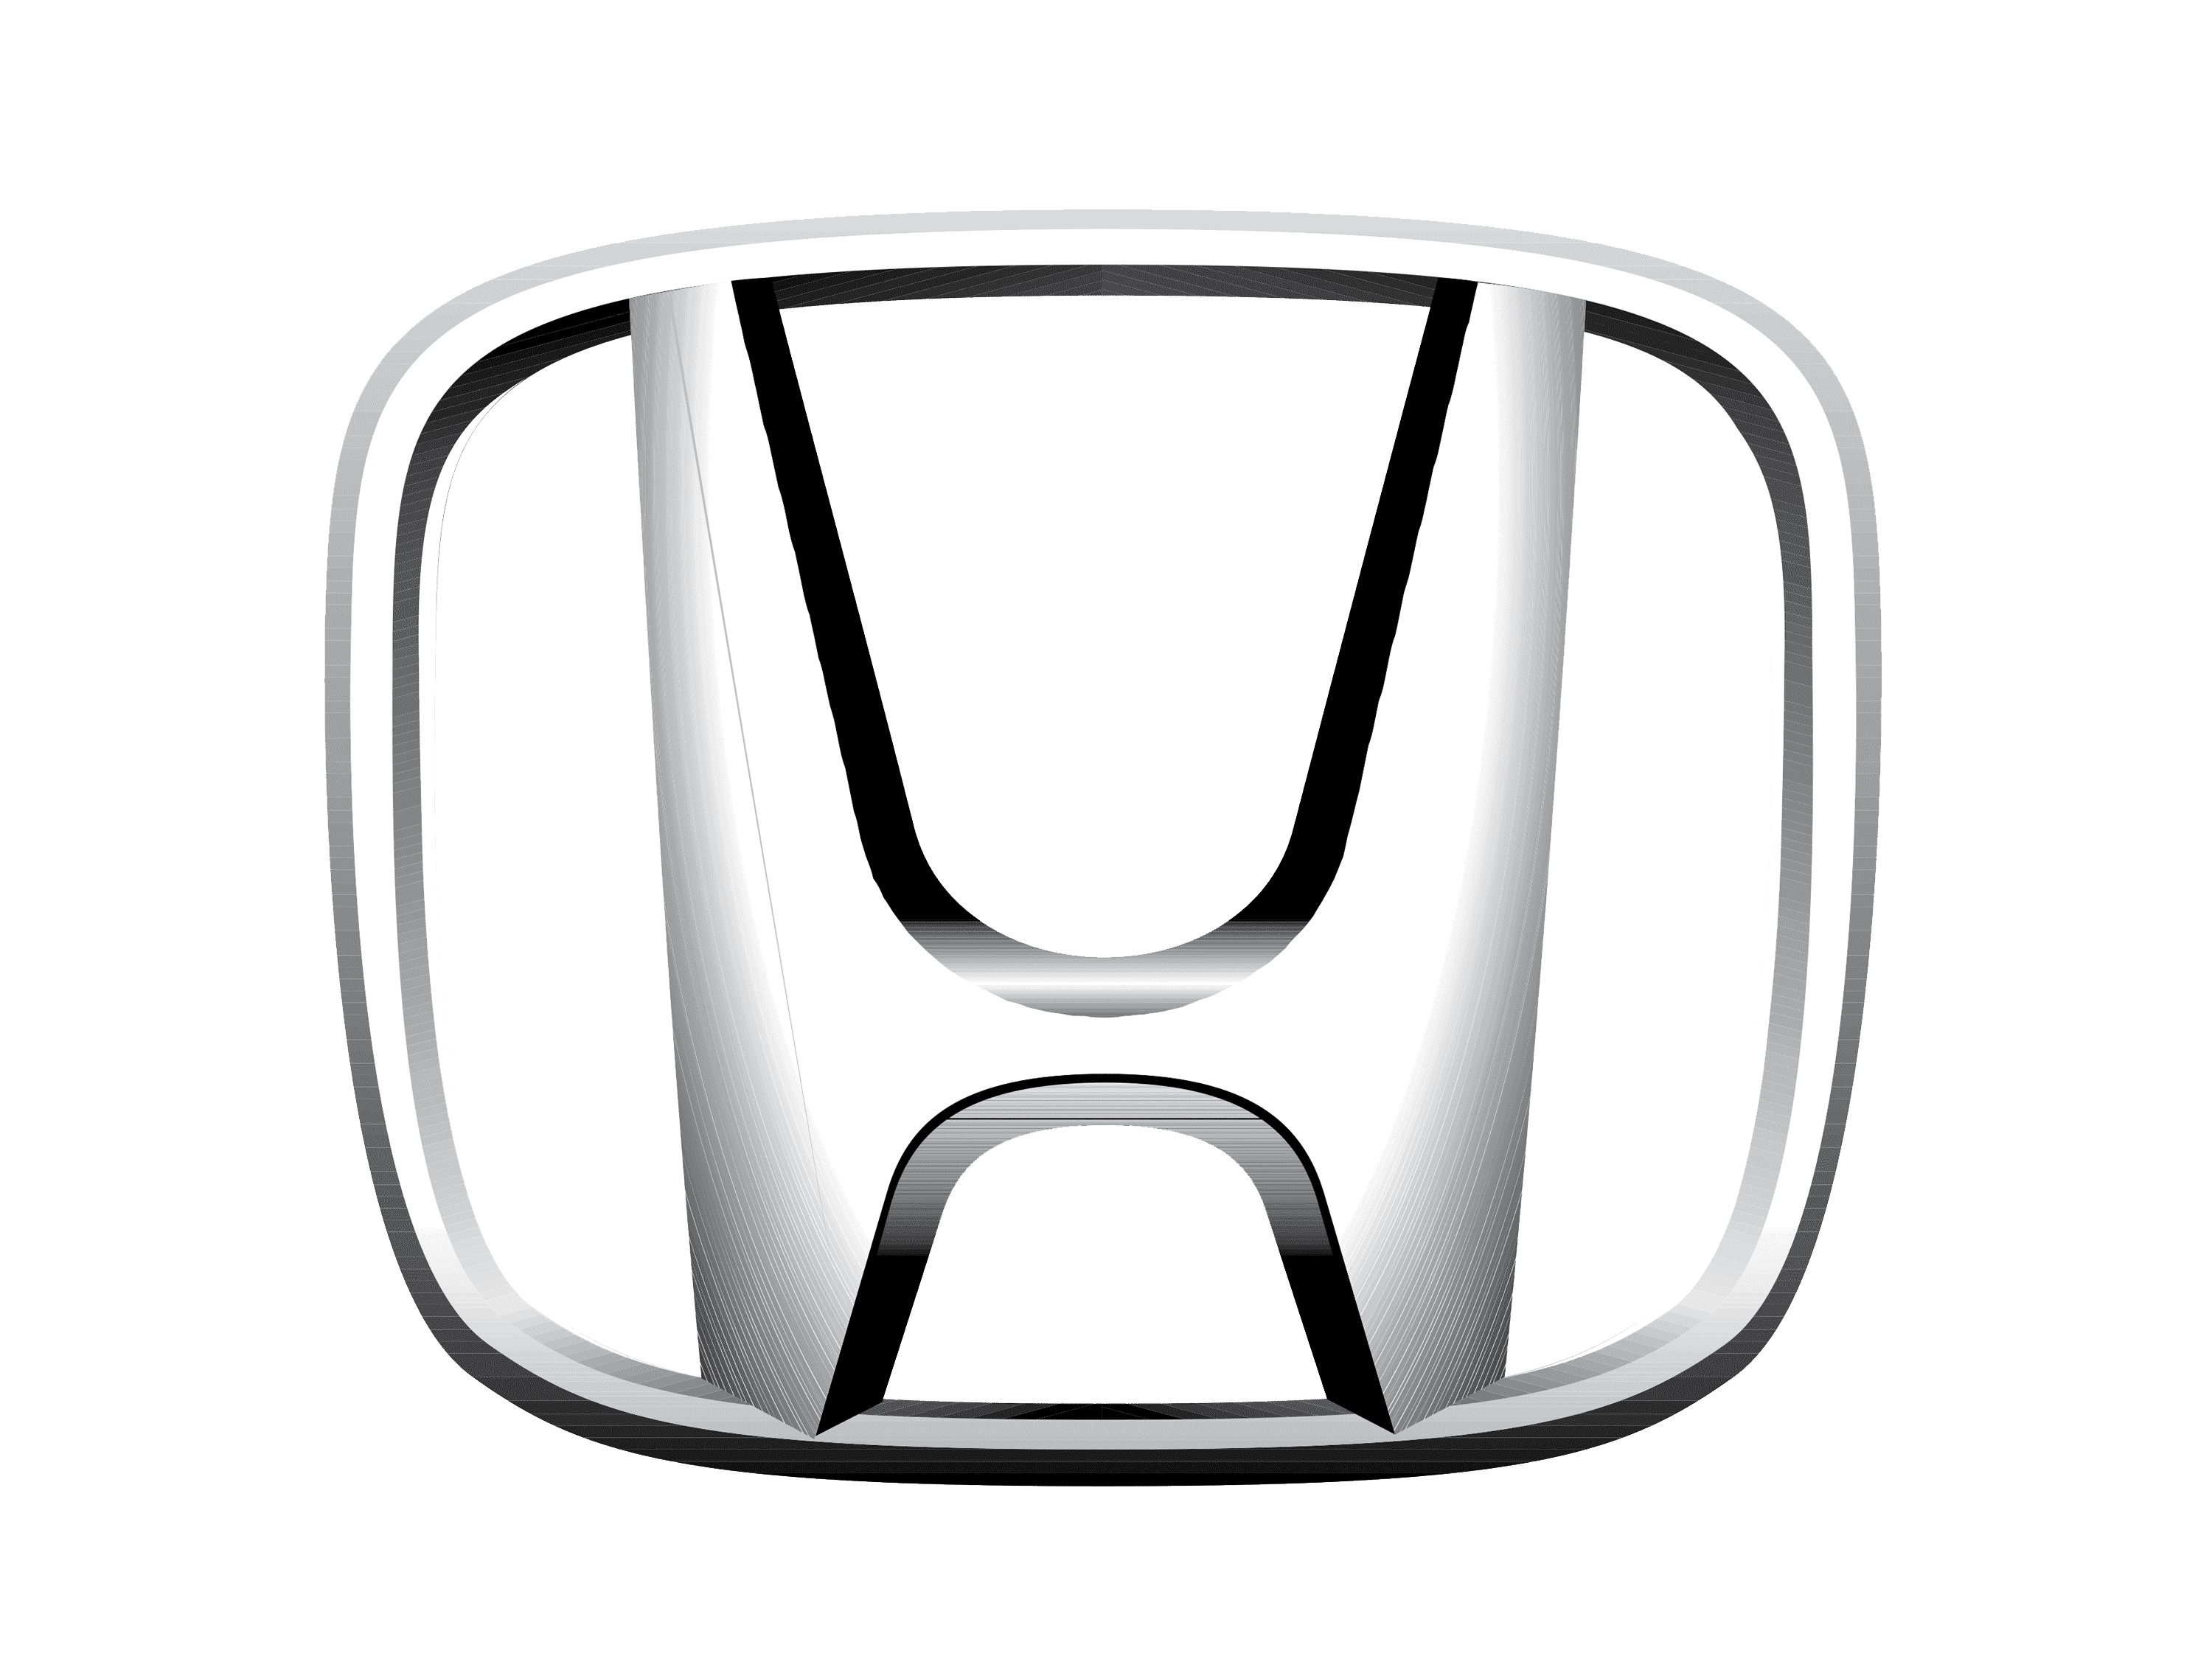 Japanese Car Brands | All car brands - company logos and ...